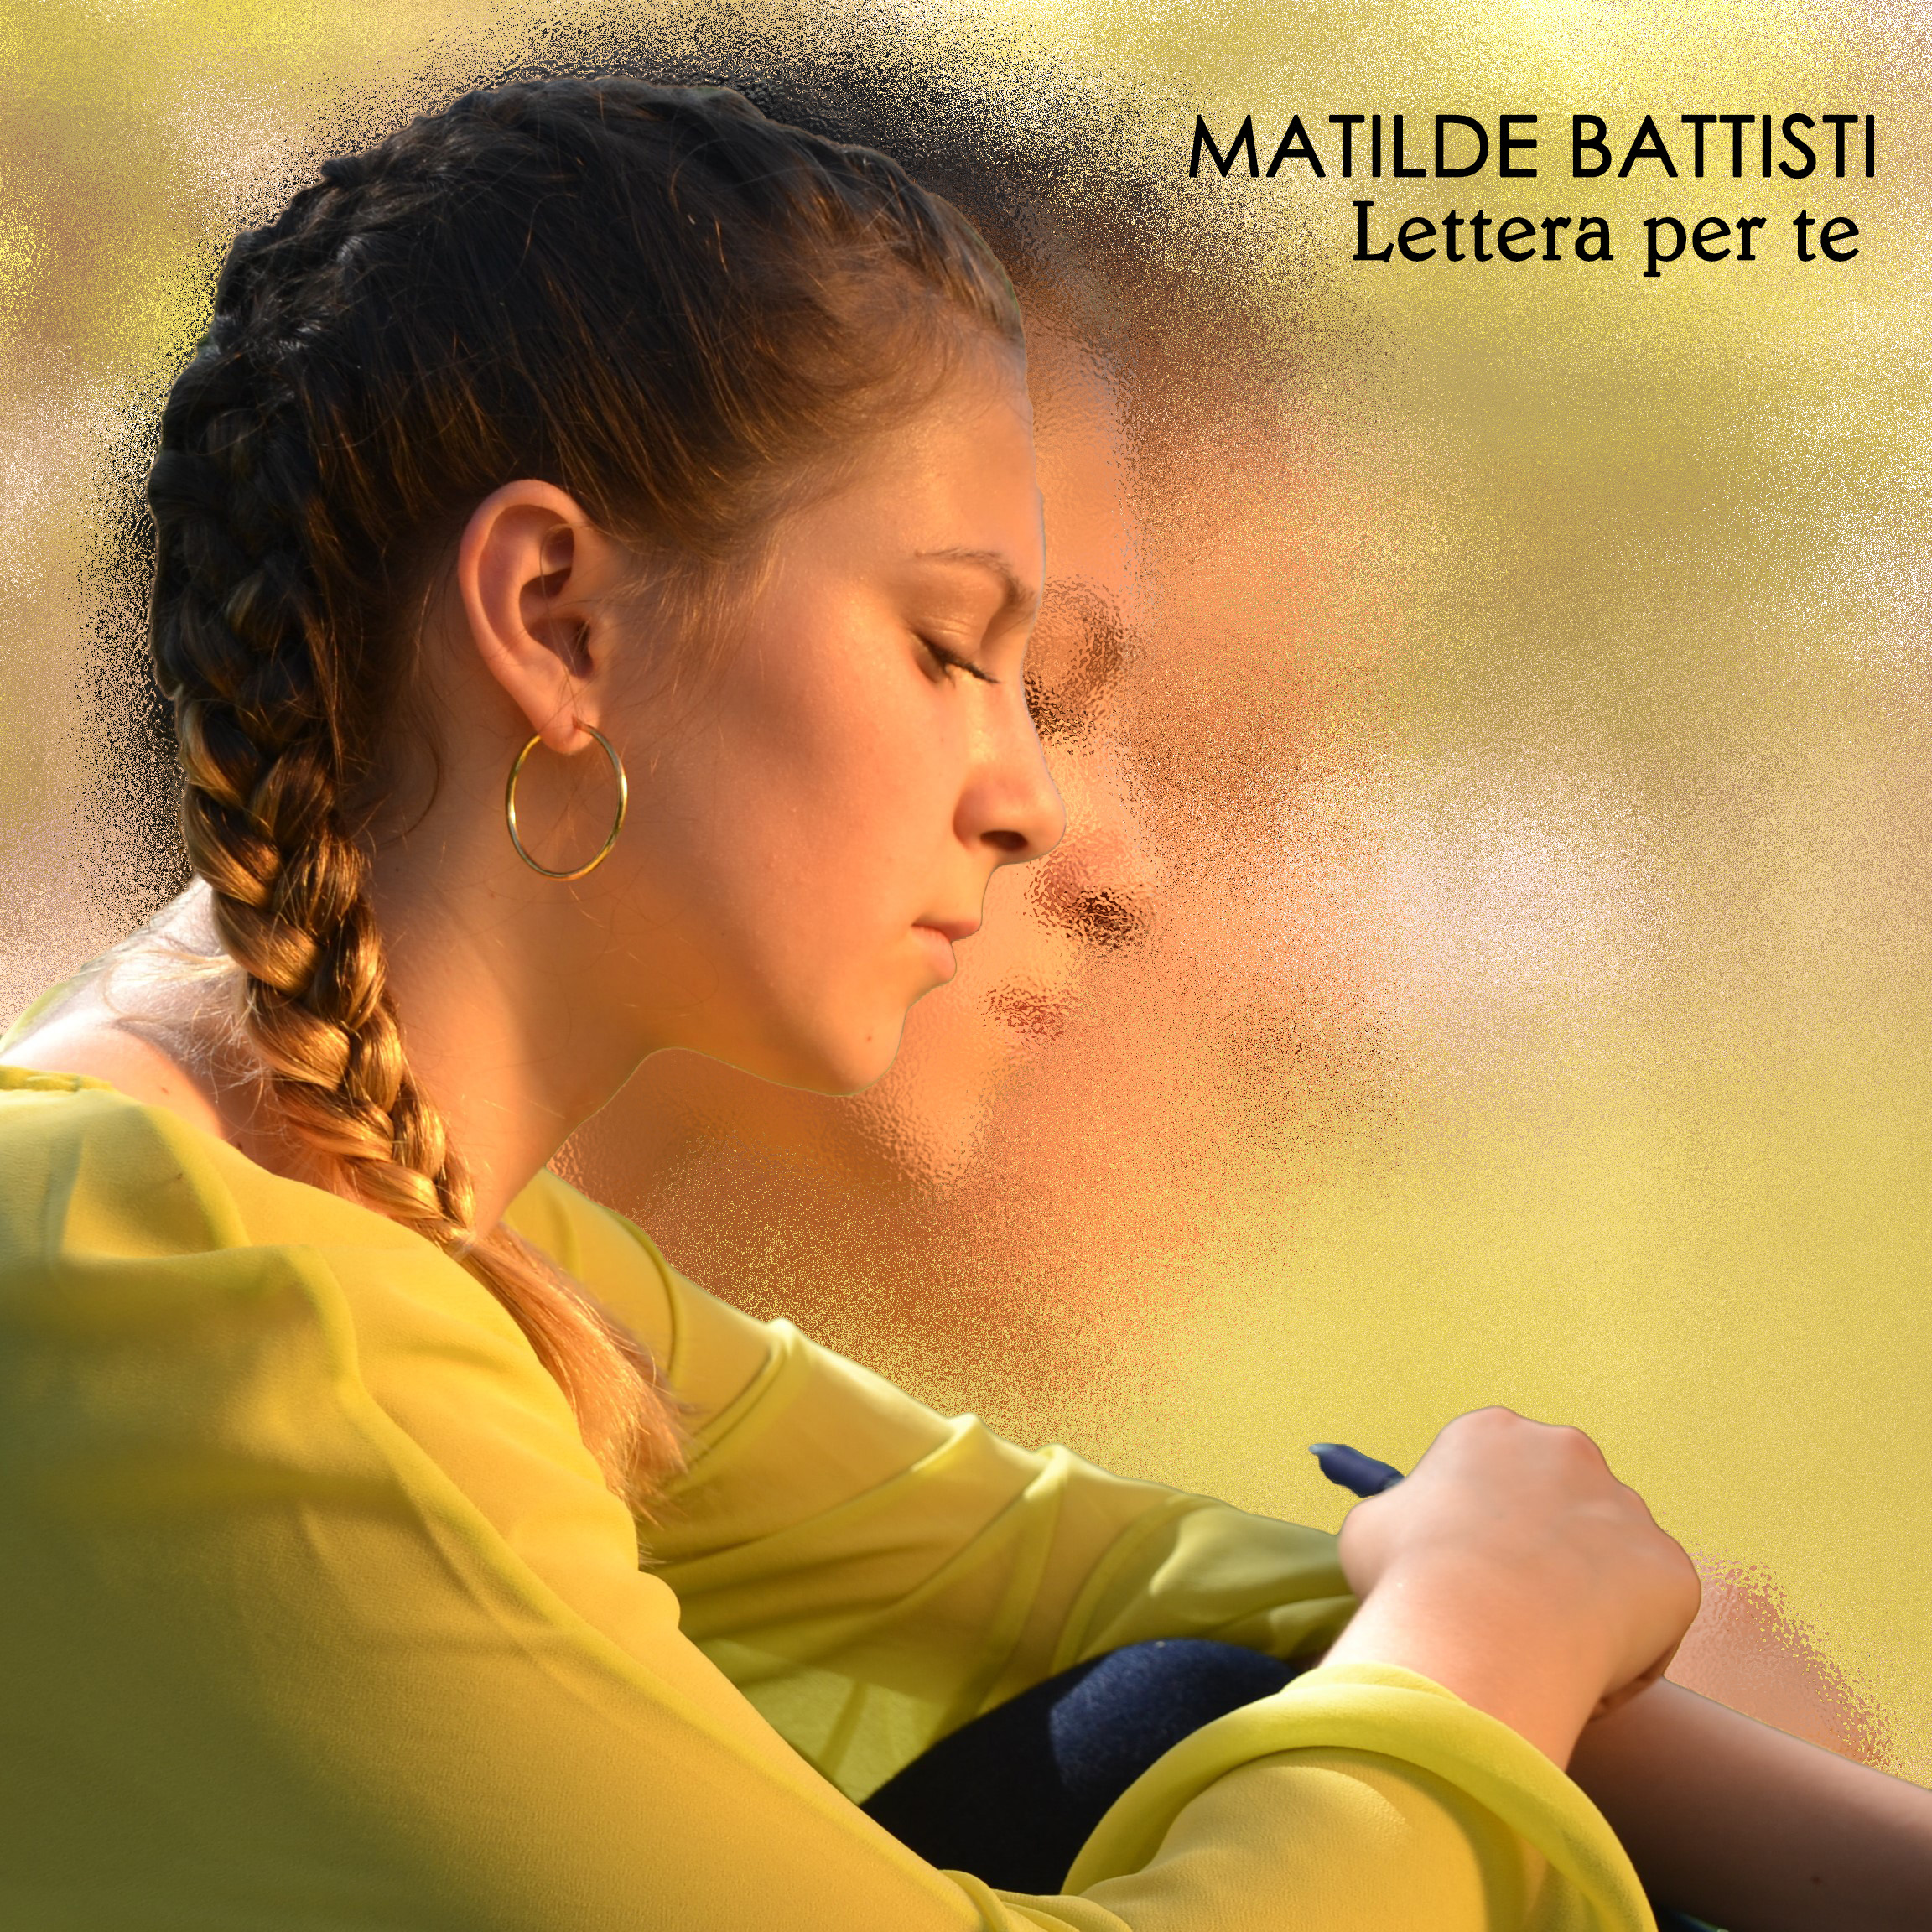 Matilde Battisti